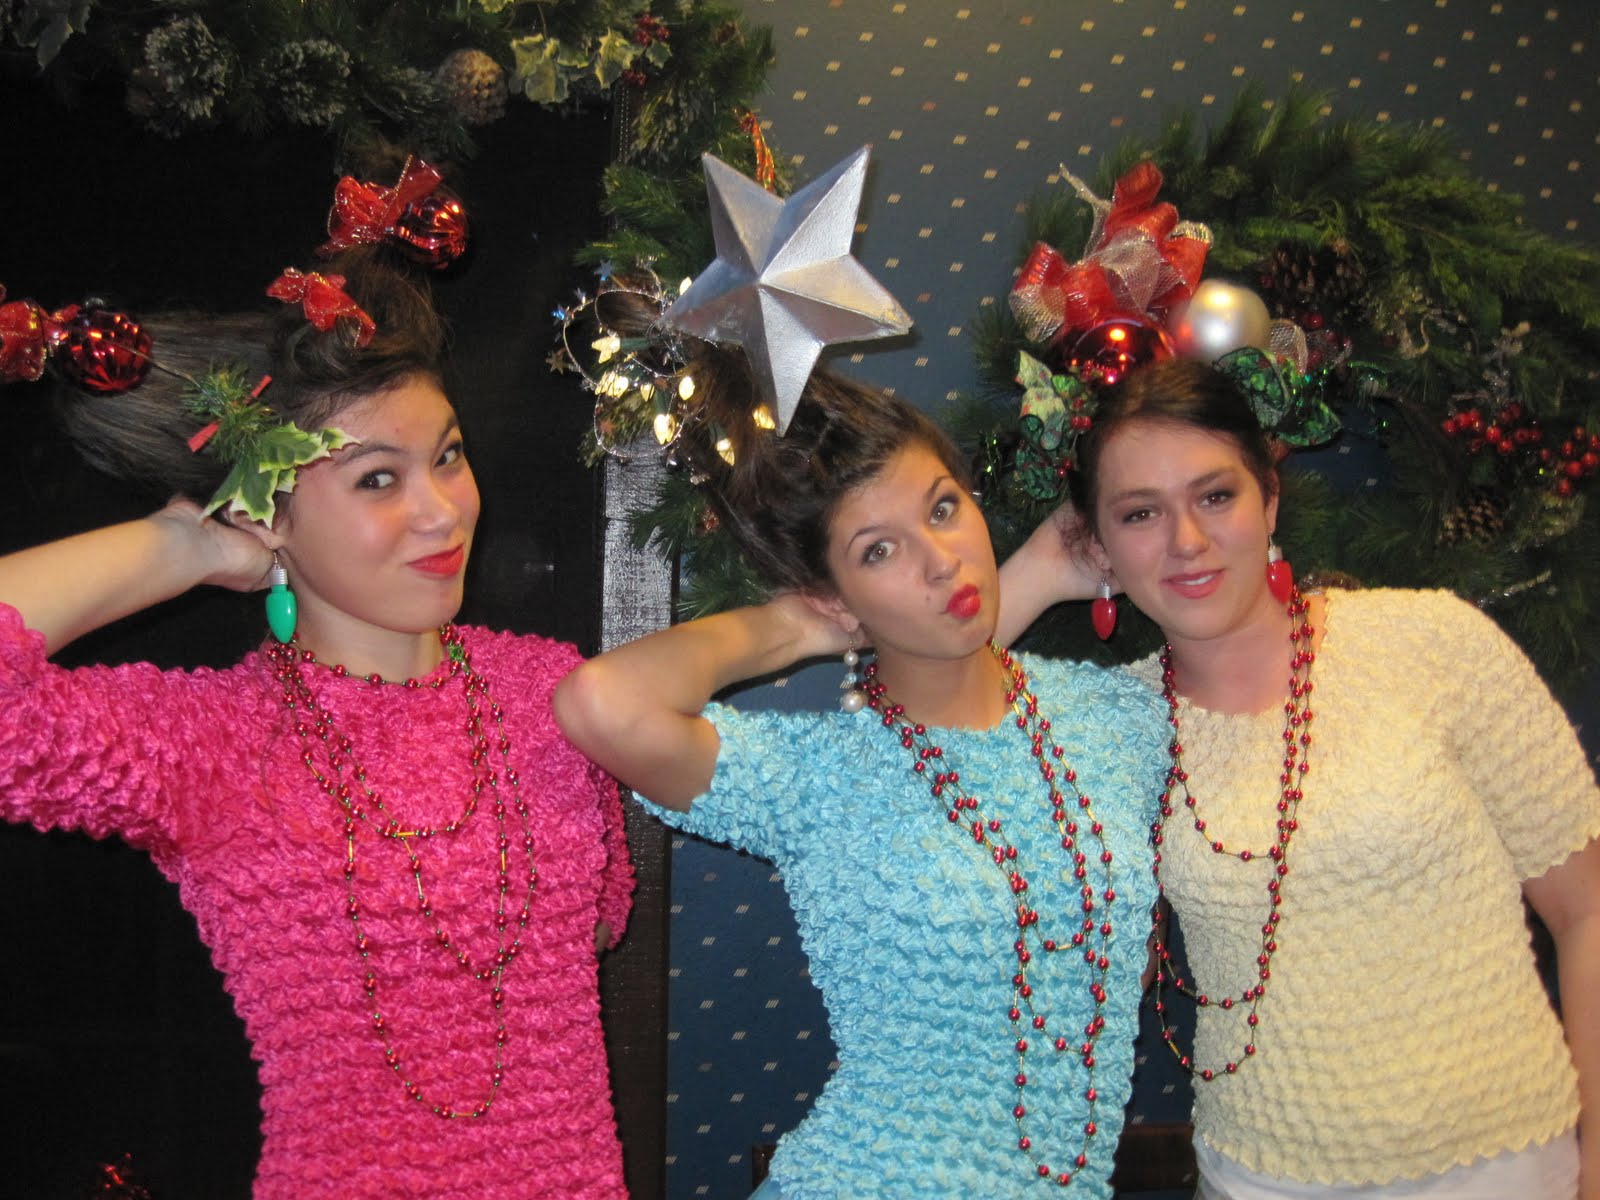 Monday December 27 2010 Whoville